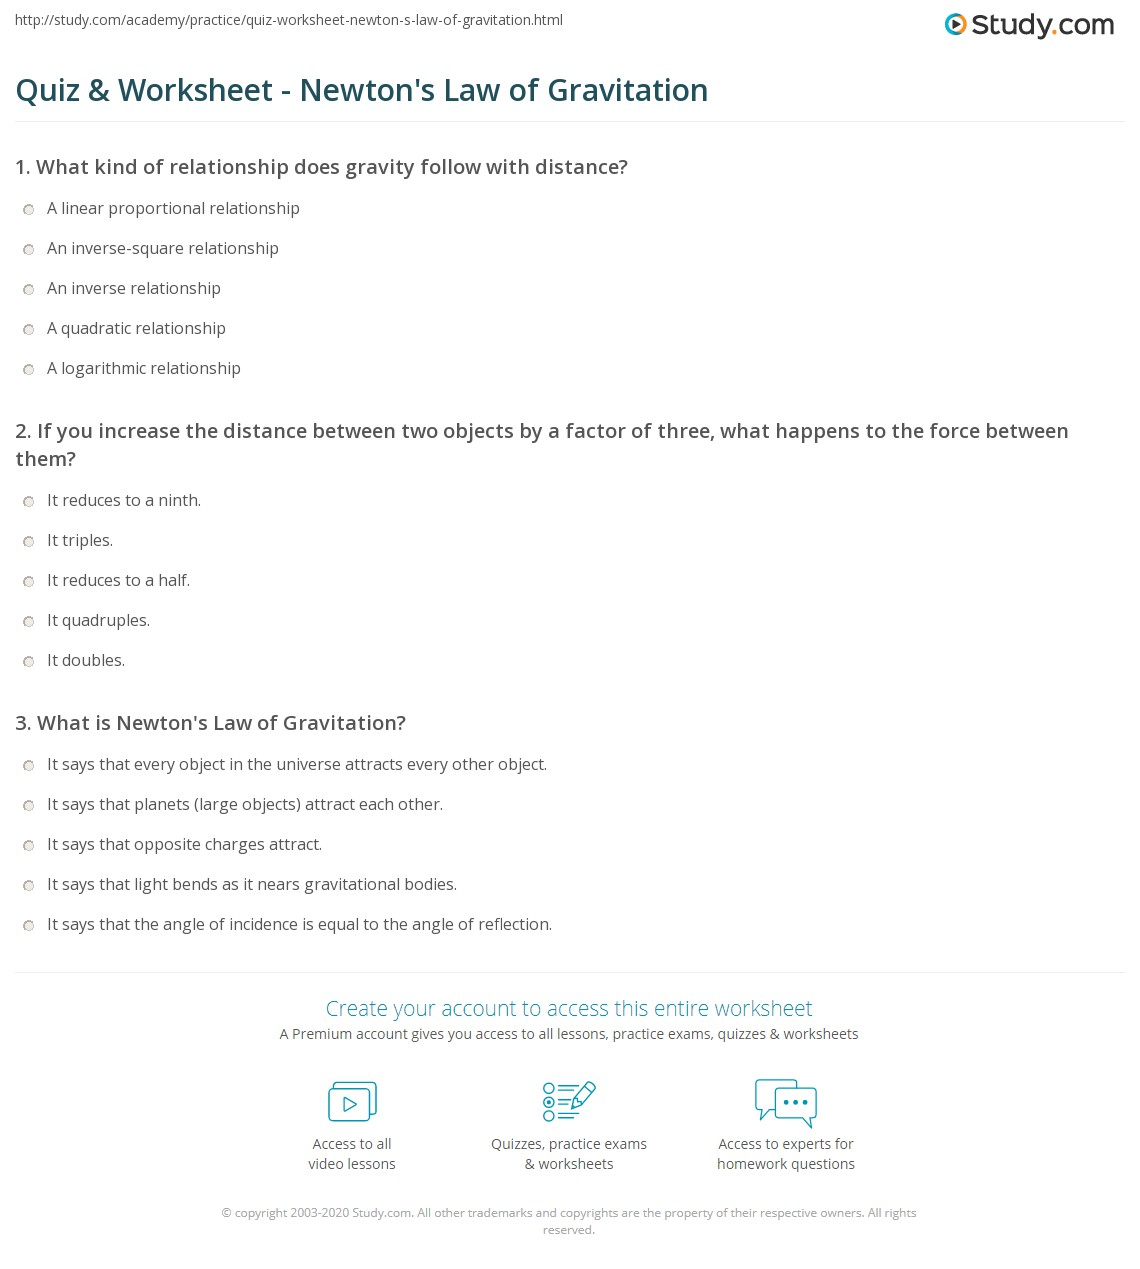 worksheets law of universal gravitation worksheet eurokaclira free worksheets for kids. Black Bedroom Furniture Sets. Home Design Ideas